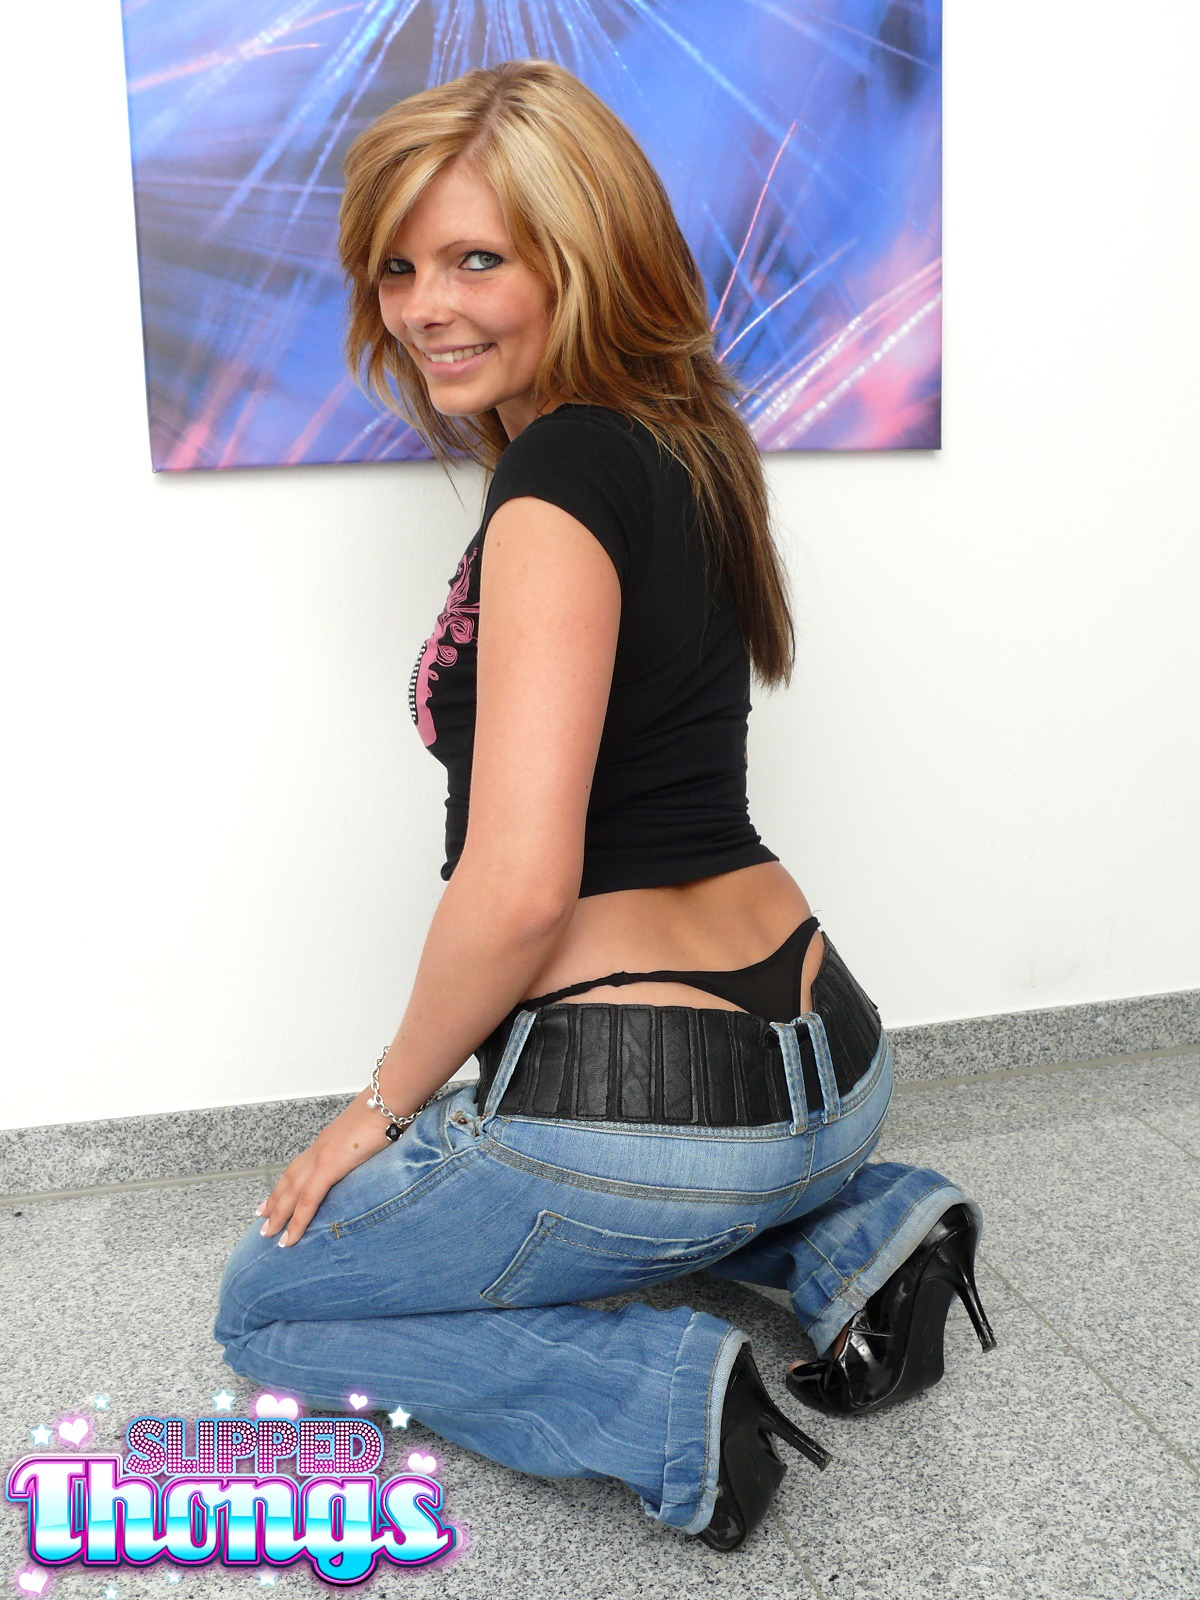 Jeans Whale Tail Girl Mia